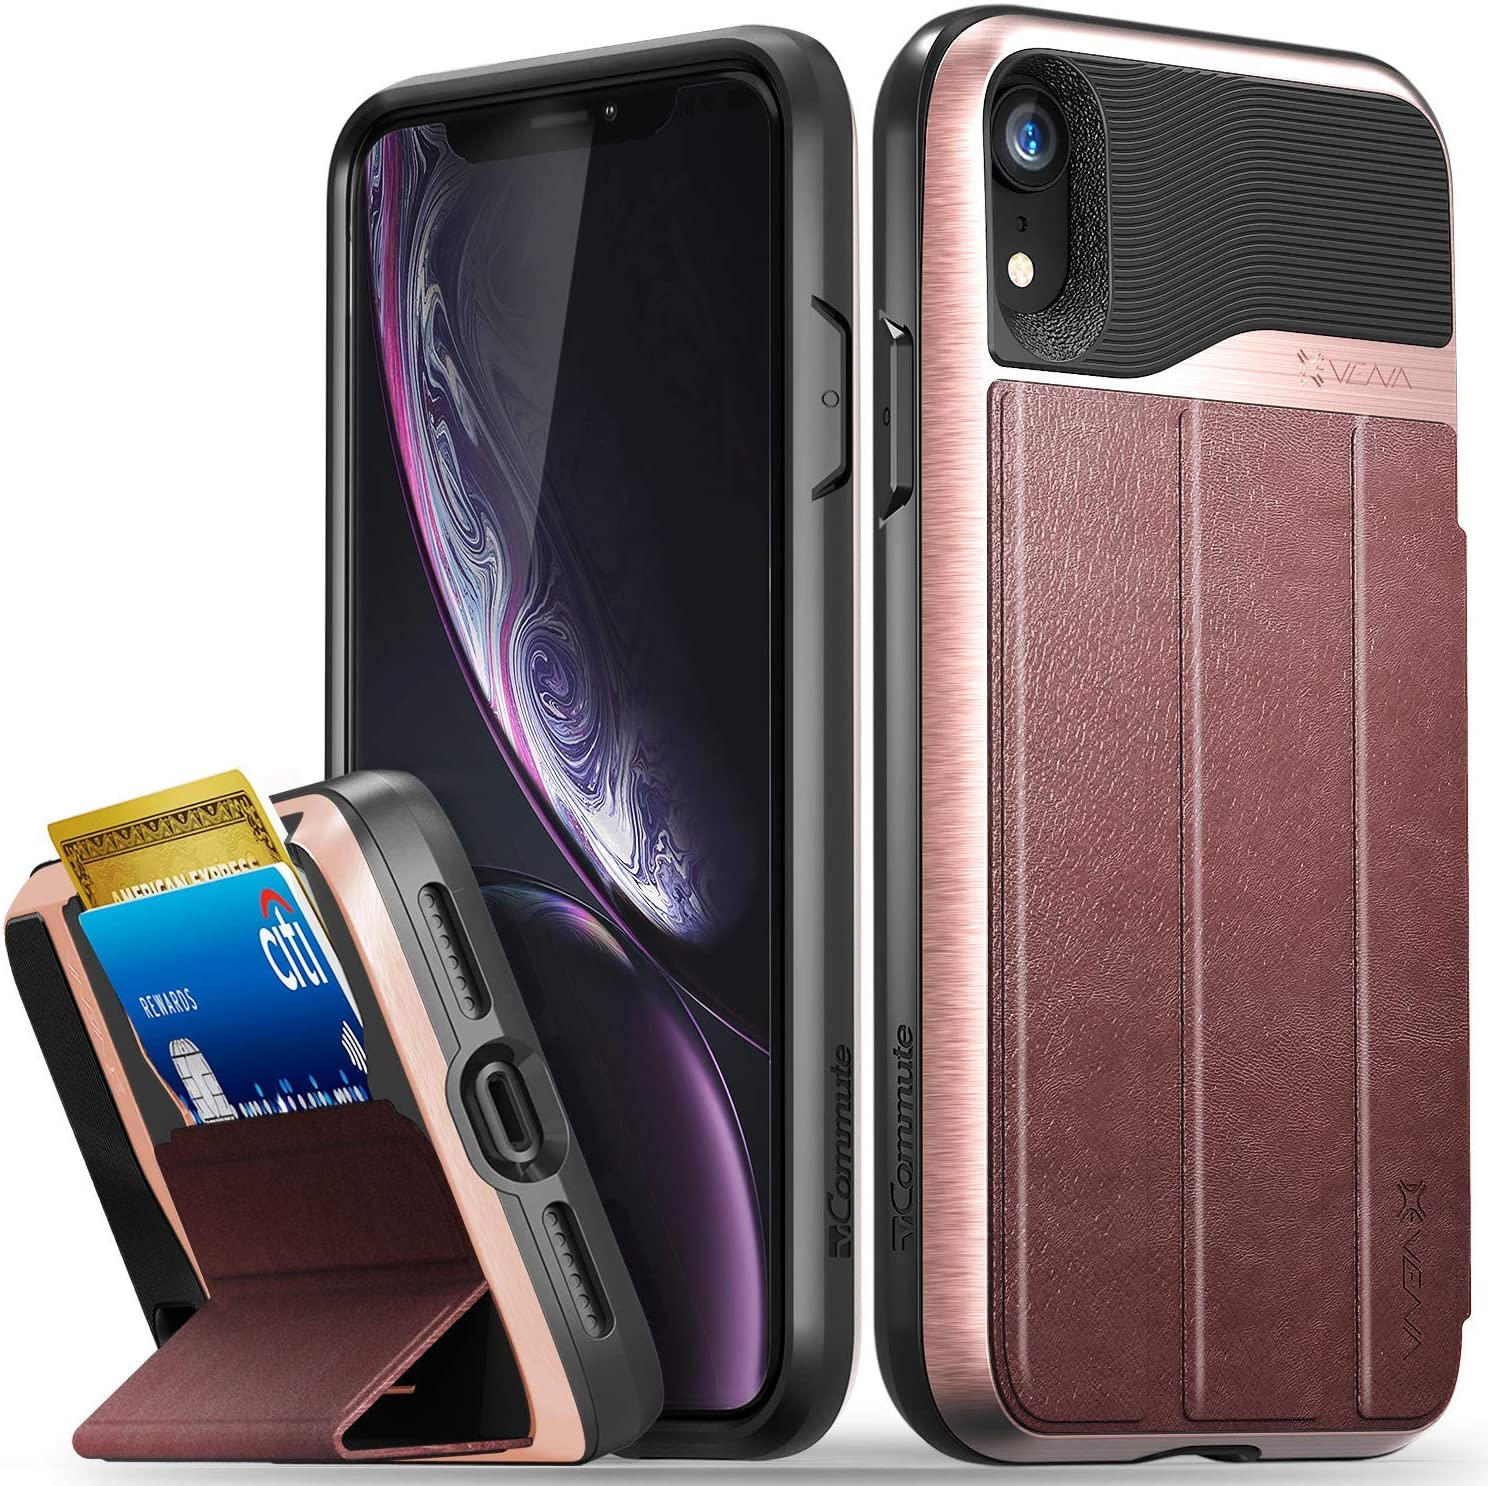 Top 7 Best iPhone Cases With Drop Protection In 2020